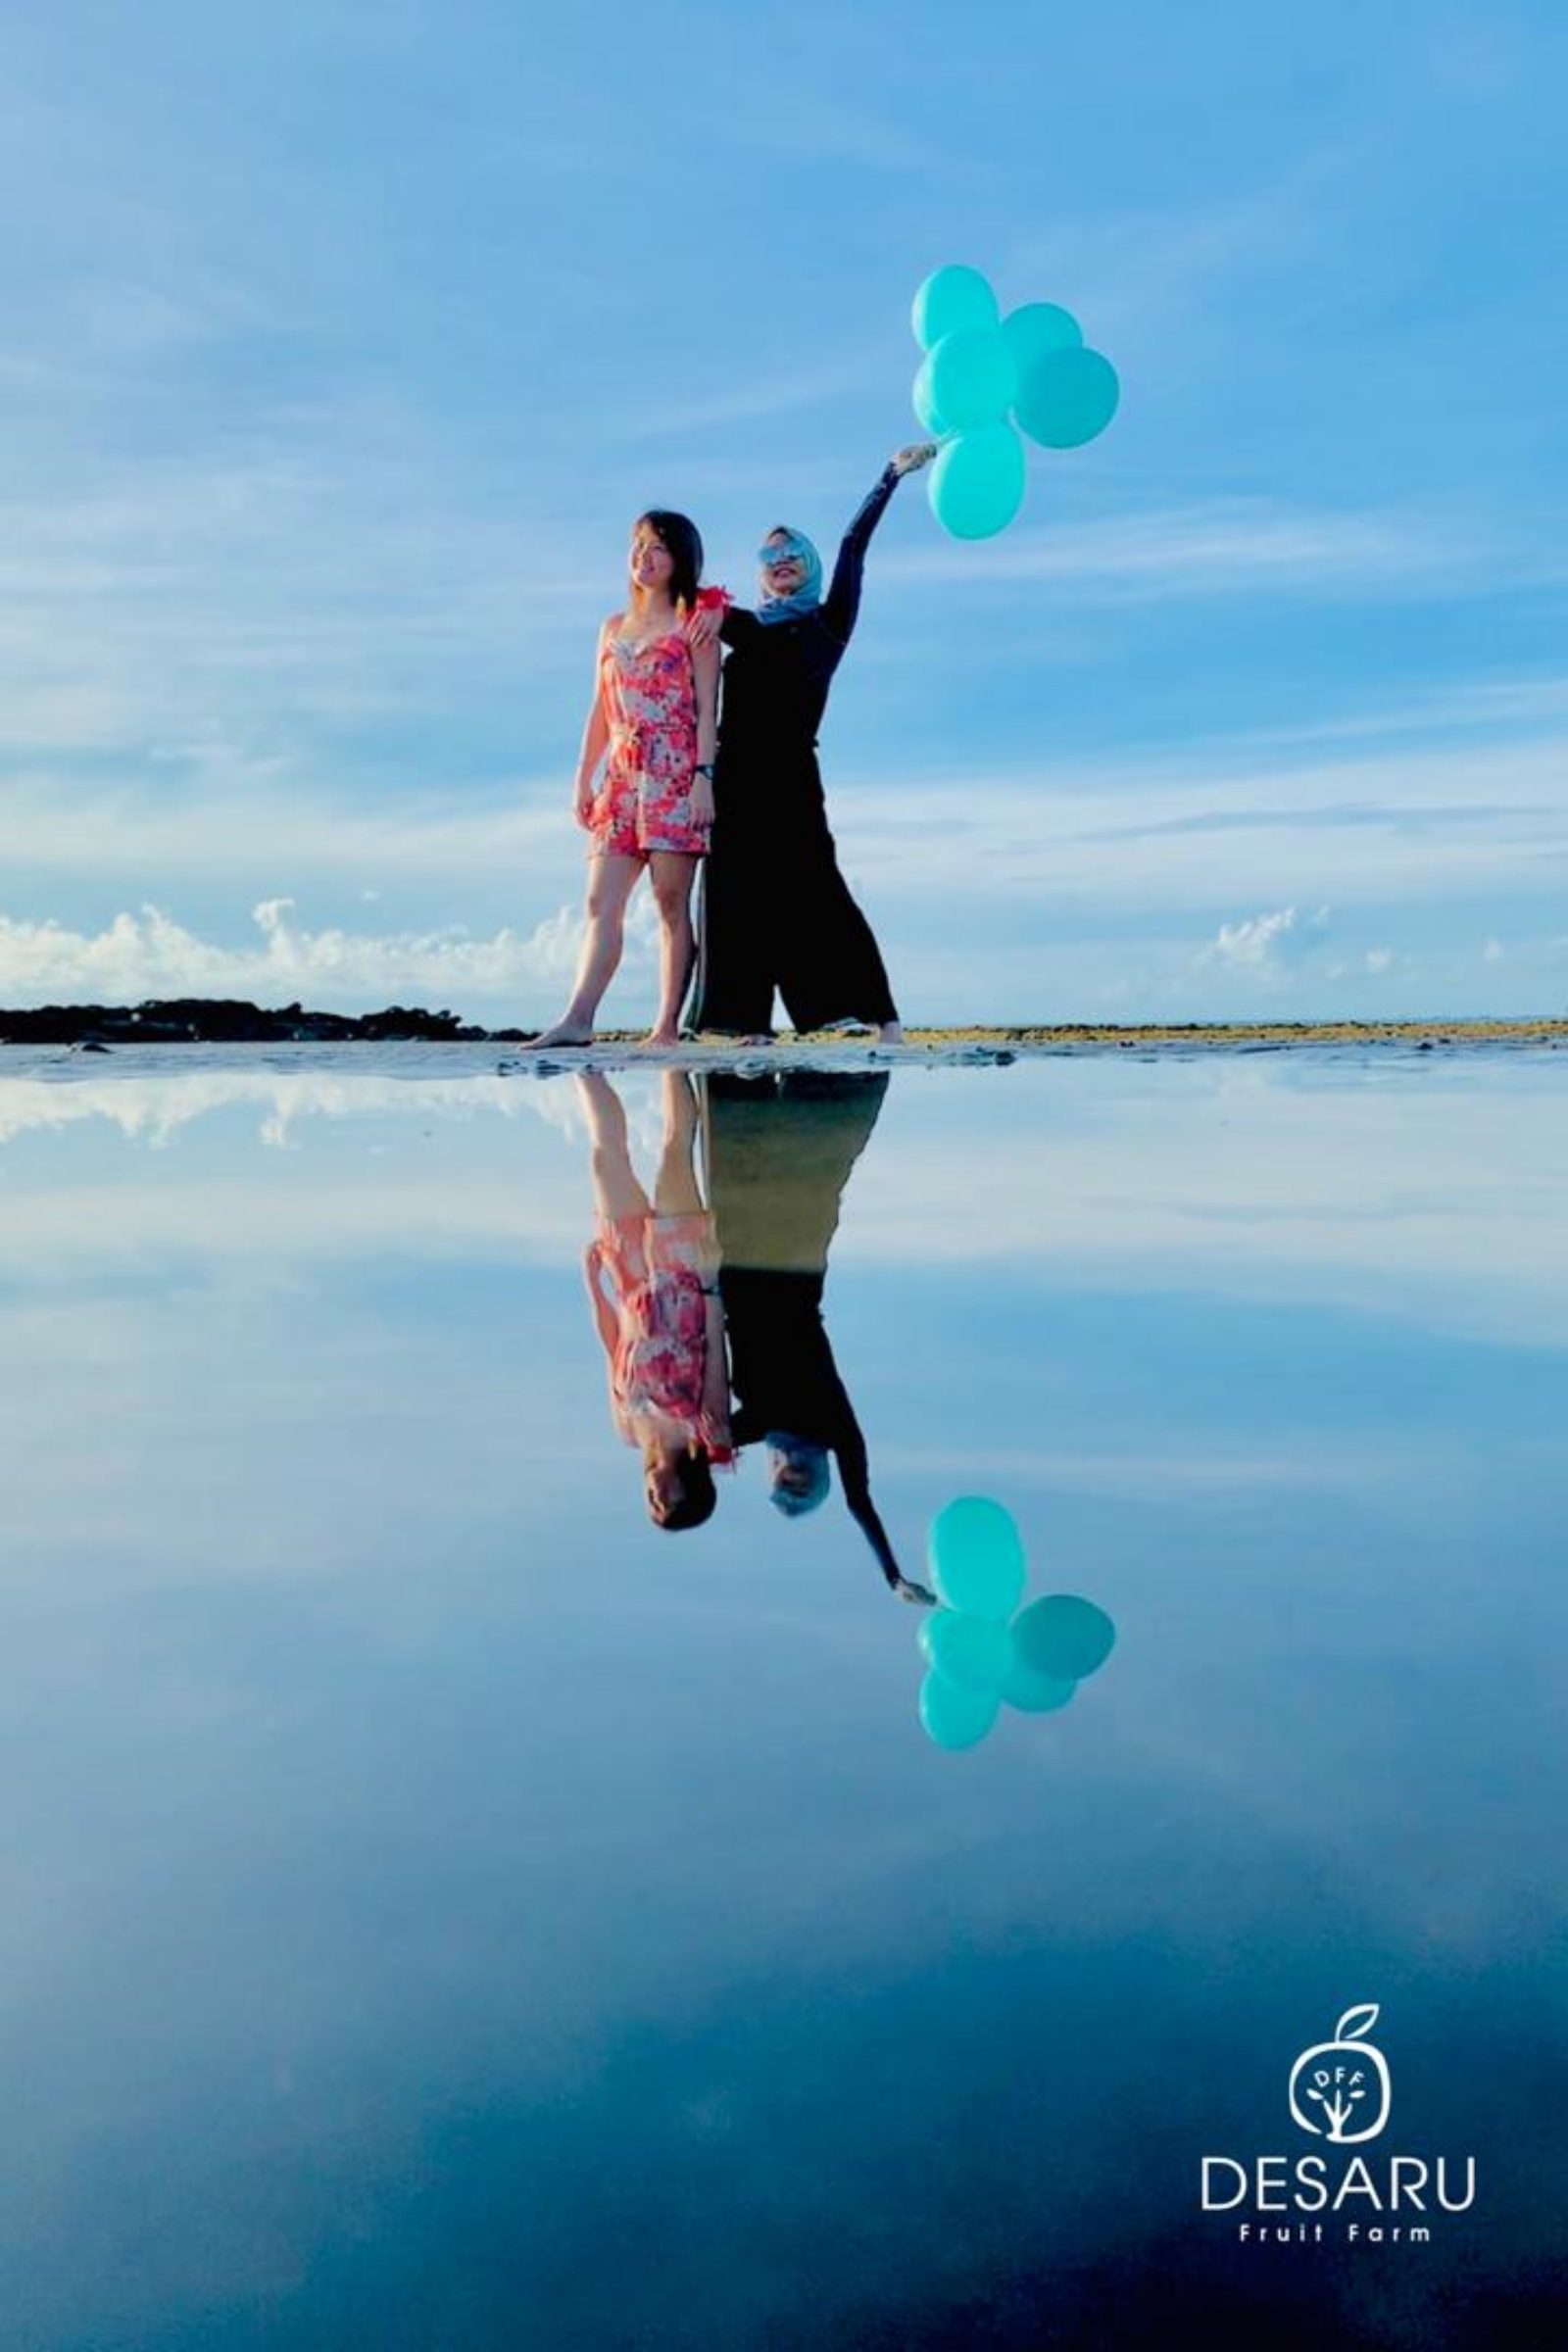 Bring the colourful props and find your best shot of mirror-like reflection of the sky at Desaru Sky Mirror during low tide (Photo by Desaru Fruit Farm)